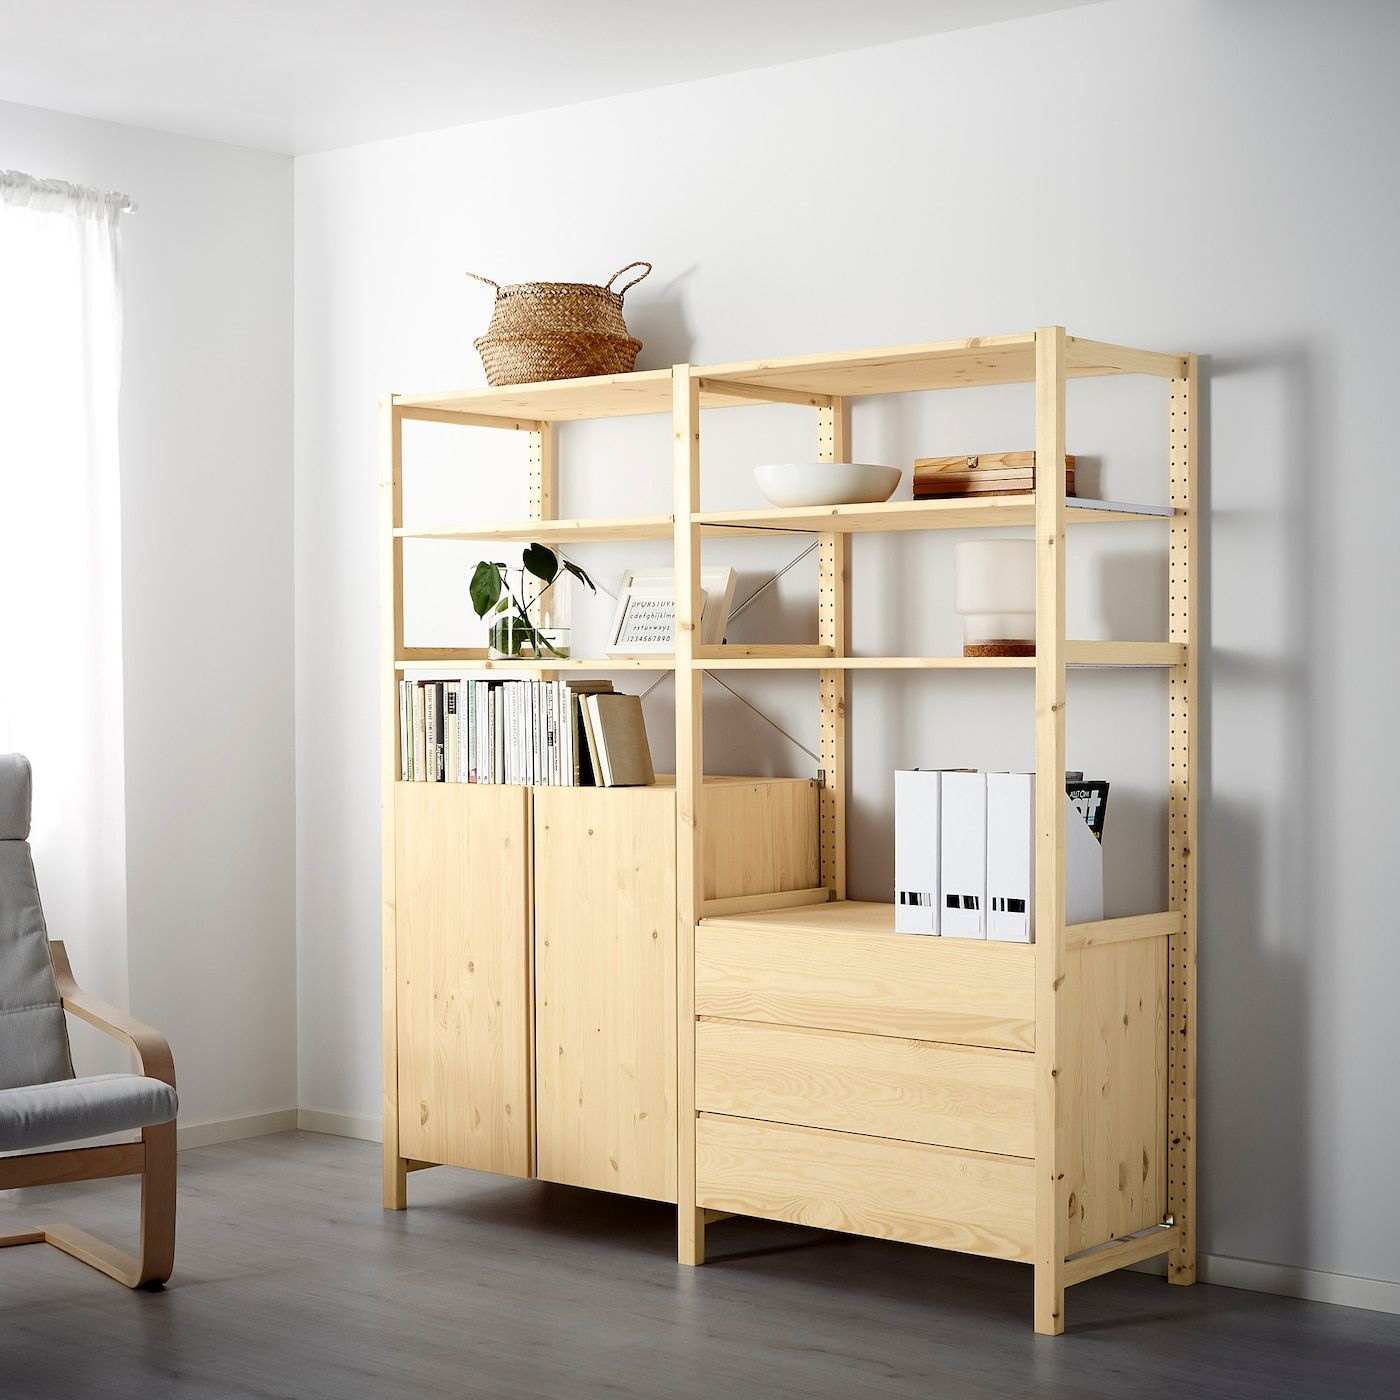 IKEA IVAR 2 sections / shelves / cabinet / chest of drawers